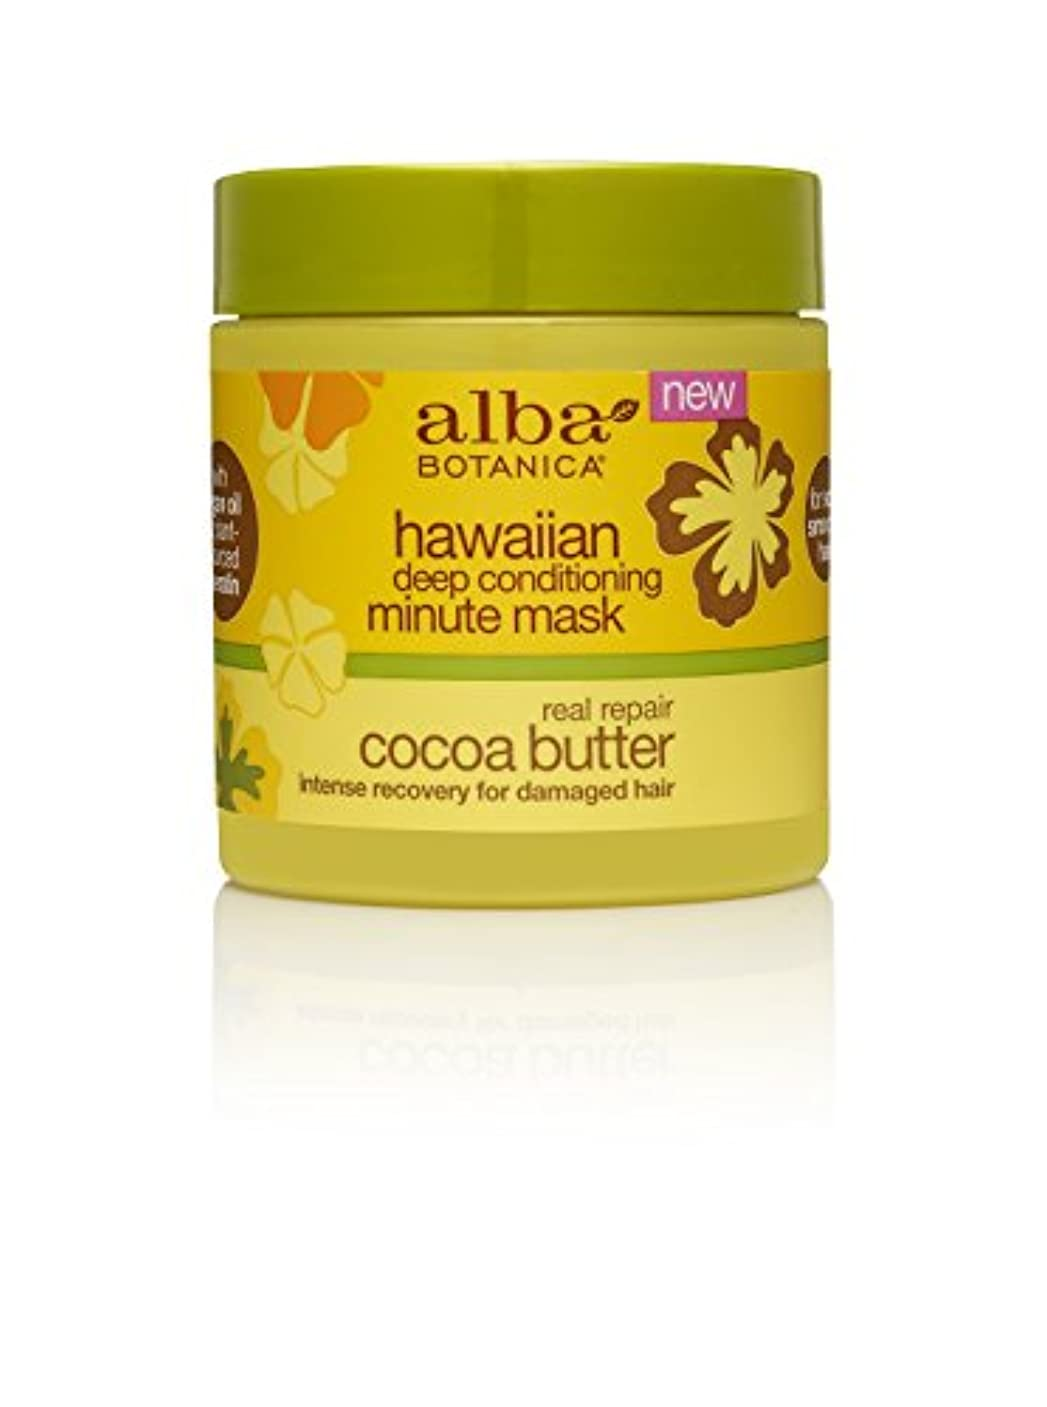 見かけ上本気発明する海外直送品Hawaiian Deep Conditioning Real Repair Minute Mask, Cocoa Butter 5.5 oz by Alba Botanica